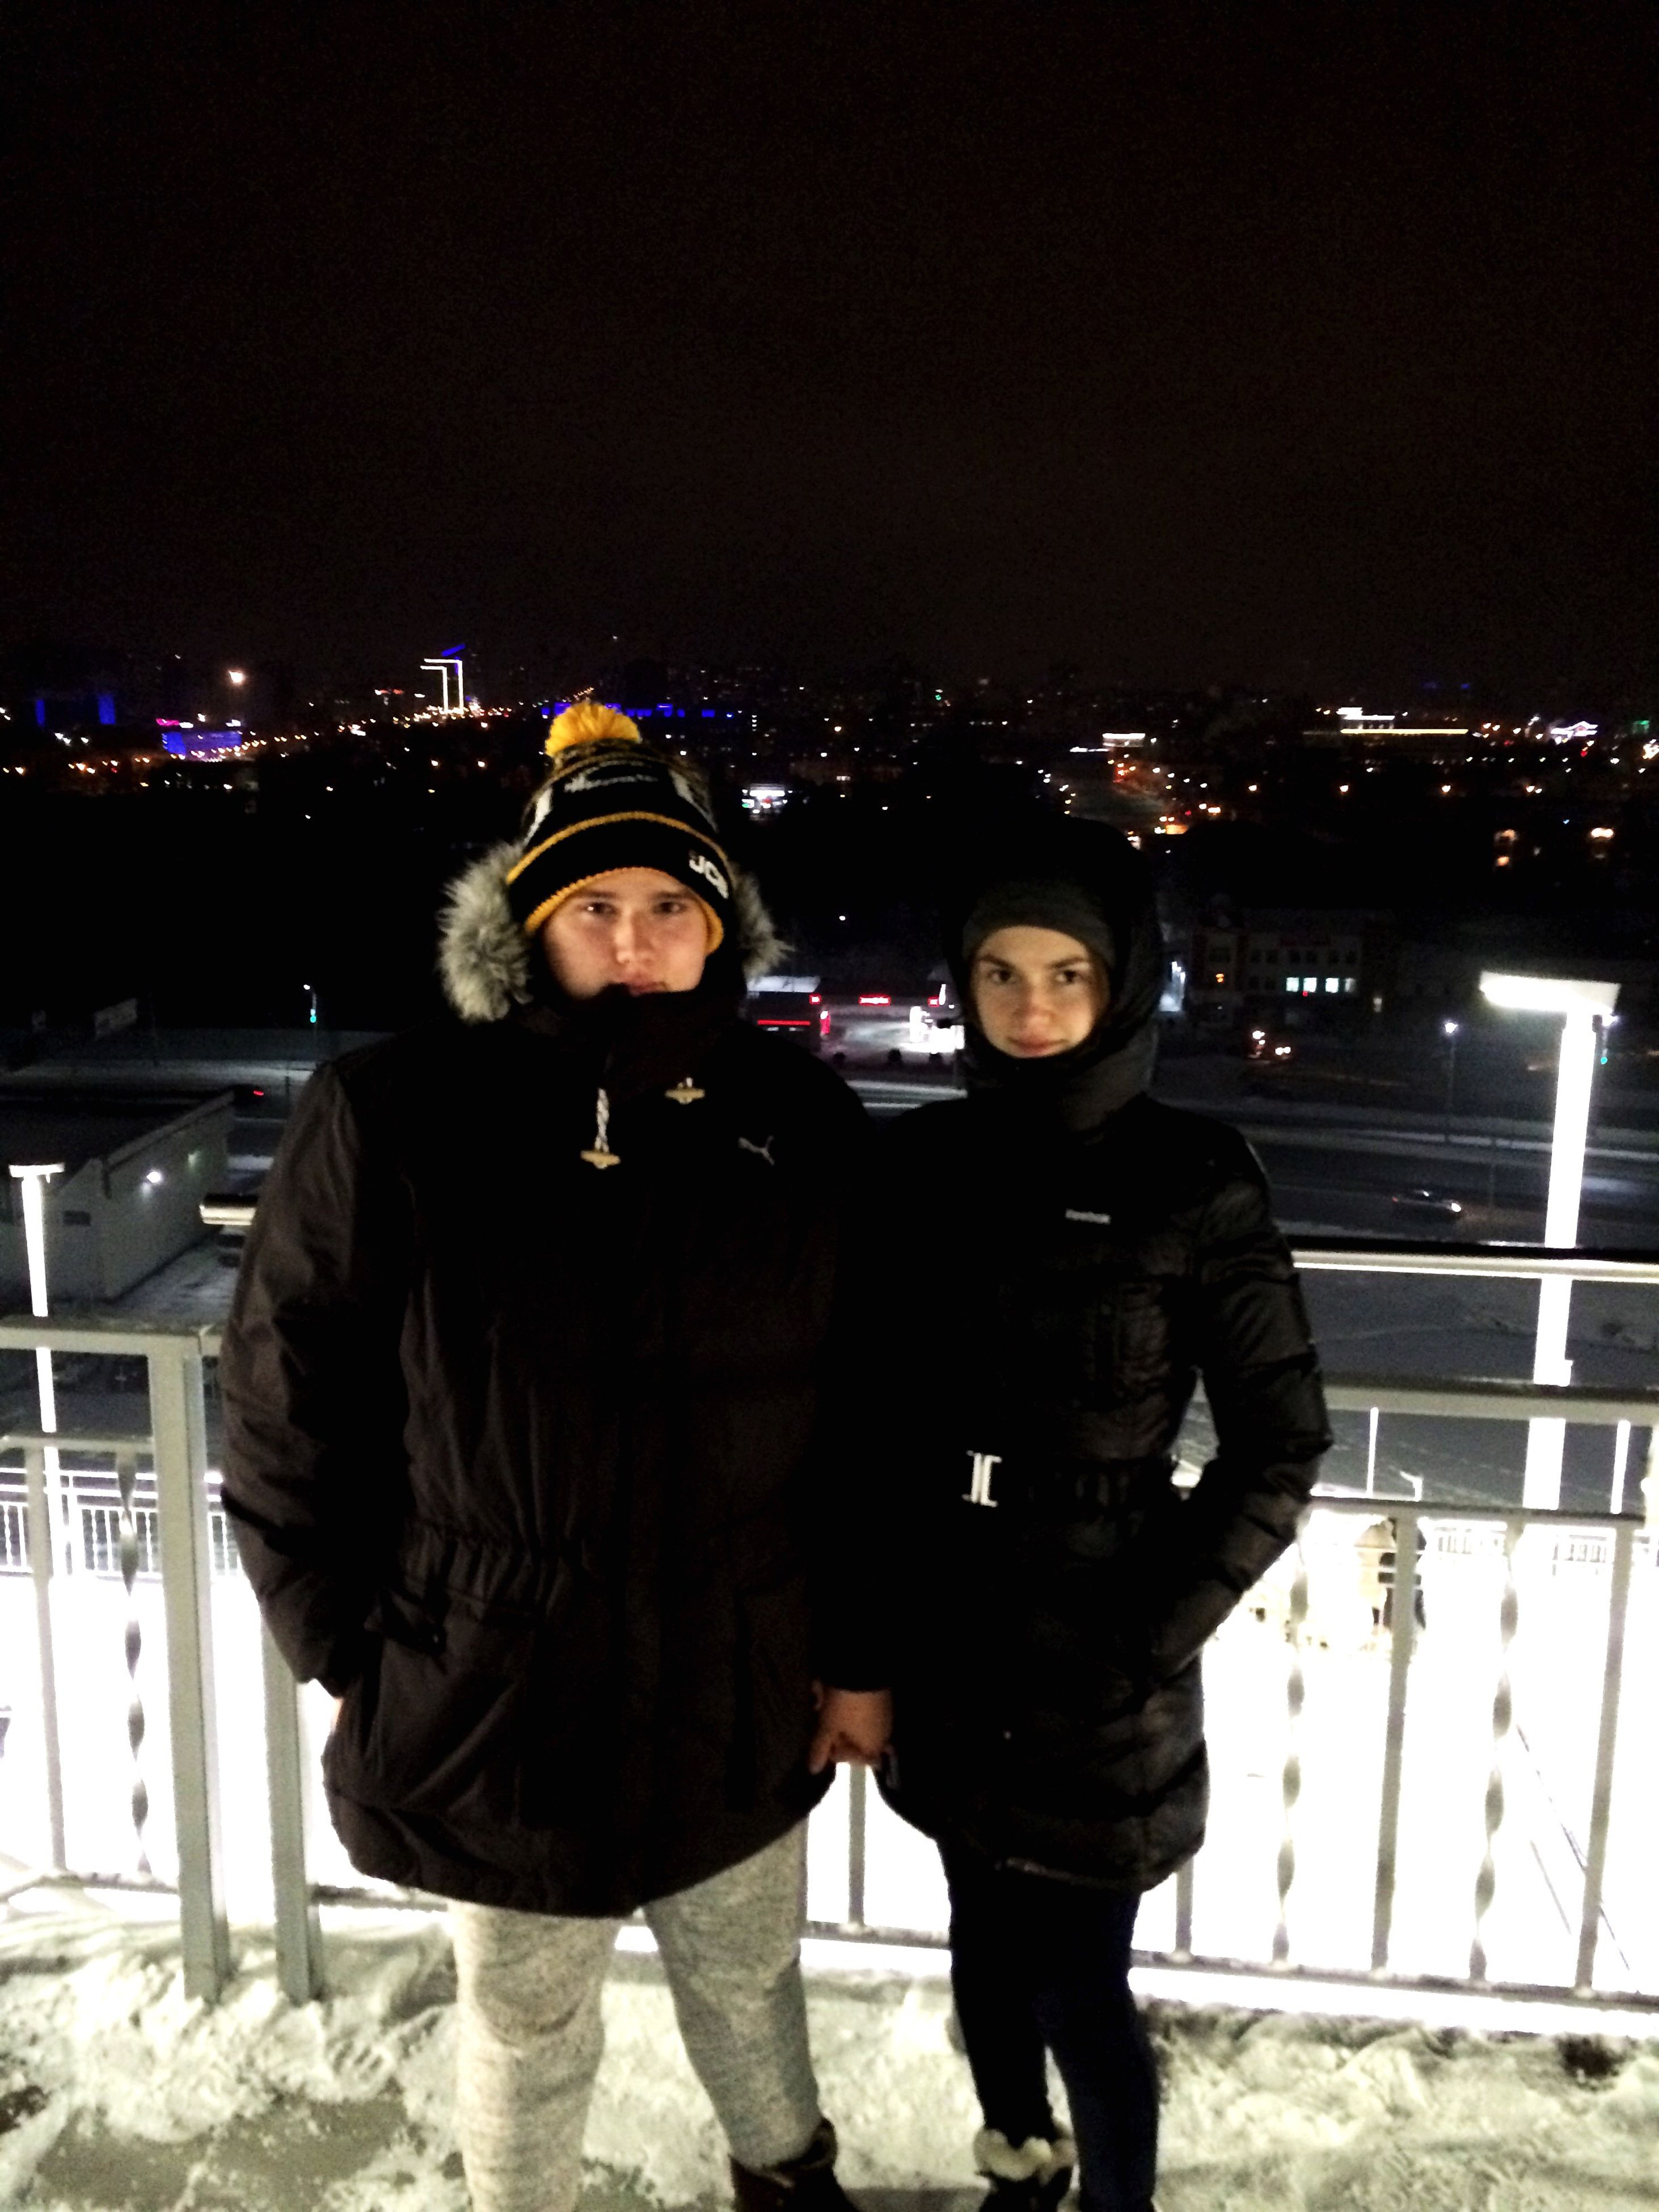 two people, night, looking at camera, portrait, togetherness, city, winter, young adult, people, smiling, archival, females, young women, real people, leisure activity, warm clothing, adult, adults only, bonding, outdoors, headwear